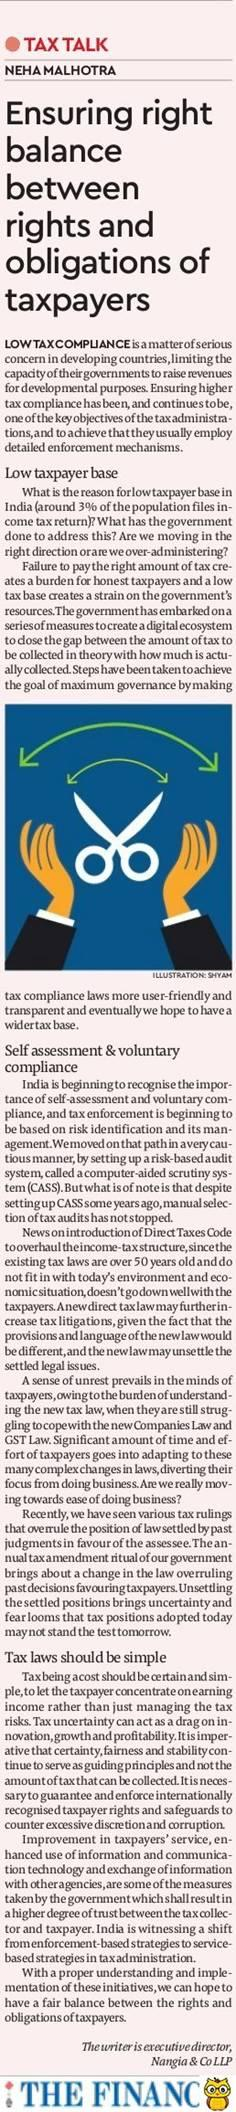 Tax-Talk-Ensuring right balance between rights and obligations of taxpayers- Neha Malhotra